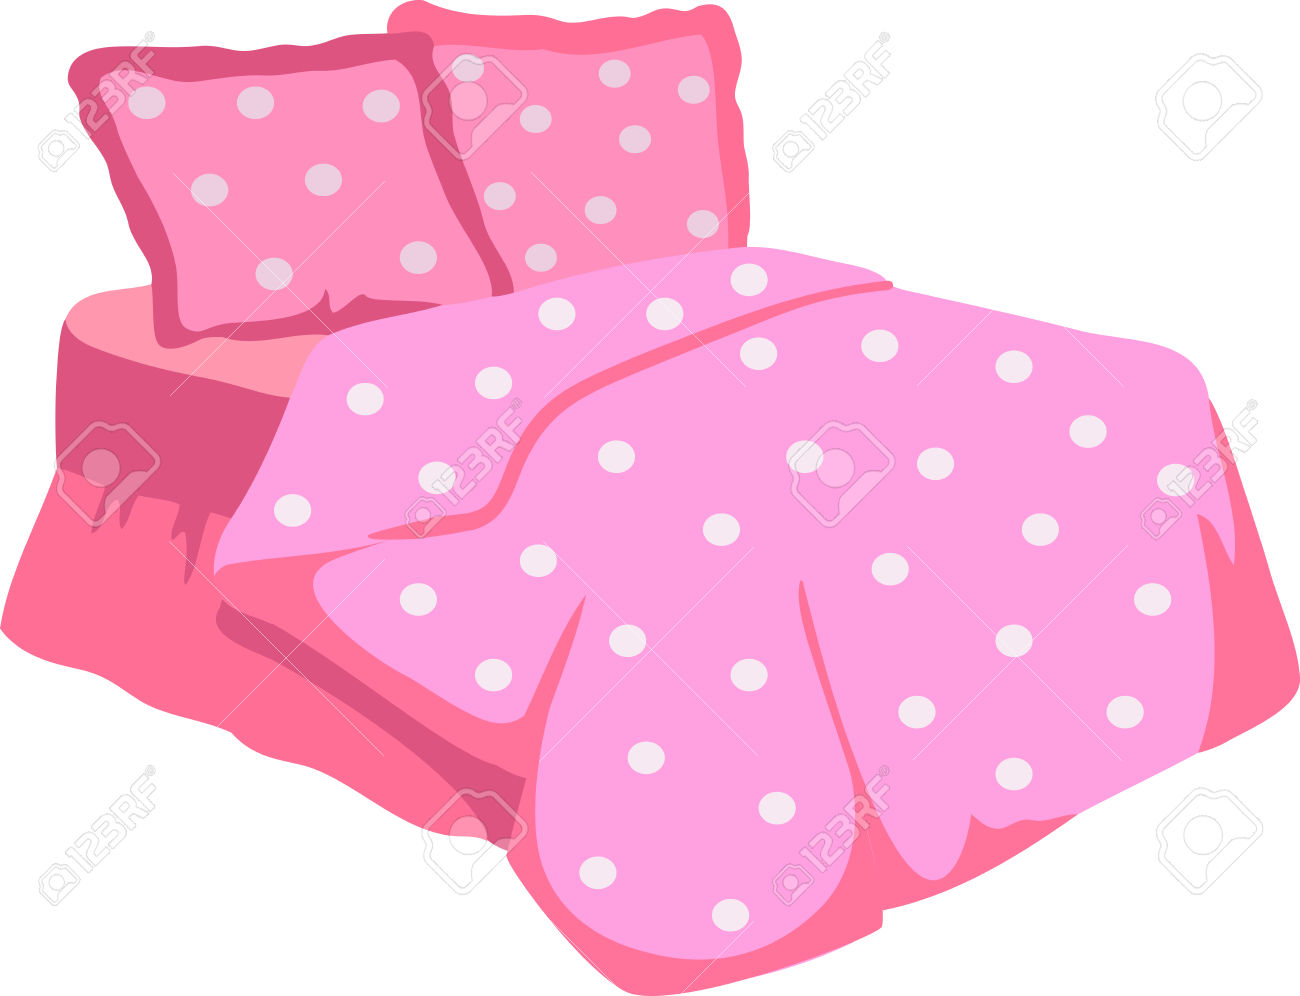 Clipart bed blanket clipart library download Bed With Pink Blanket and pillow » Clipart Station clipart library download